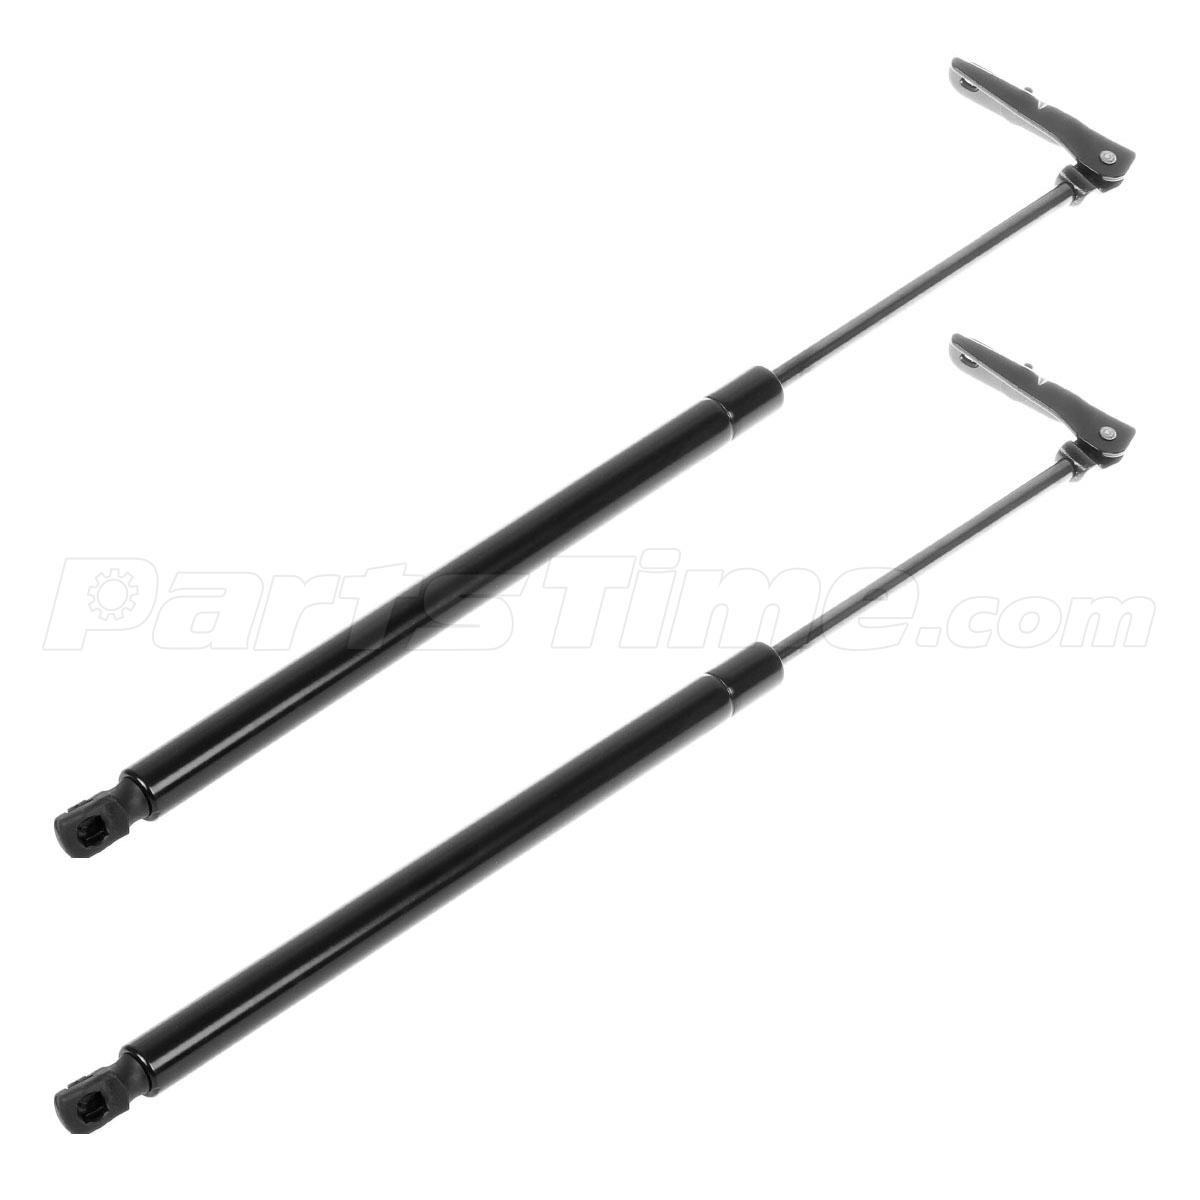 1994 Toyota Celica Shock And Strut Set With Rebuildable: For Toyota Celica 94-99 Rear Hatch Lift Support Gas Struts